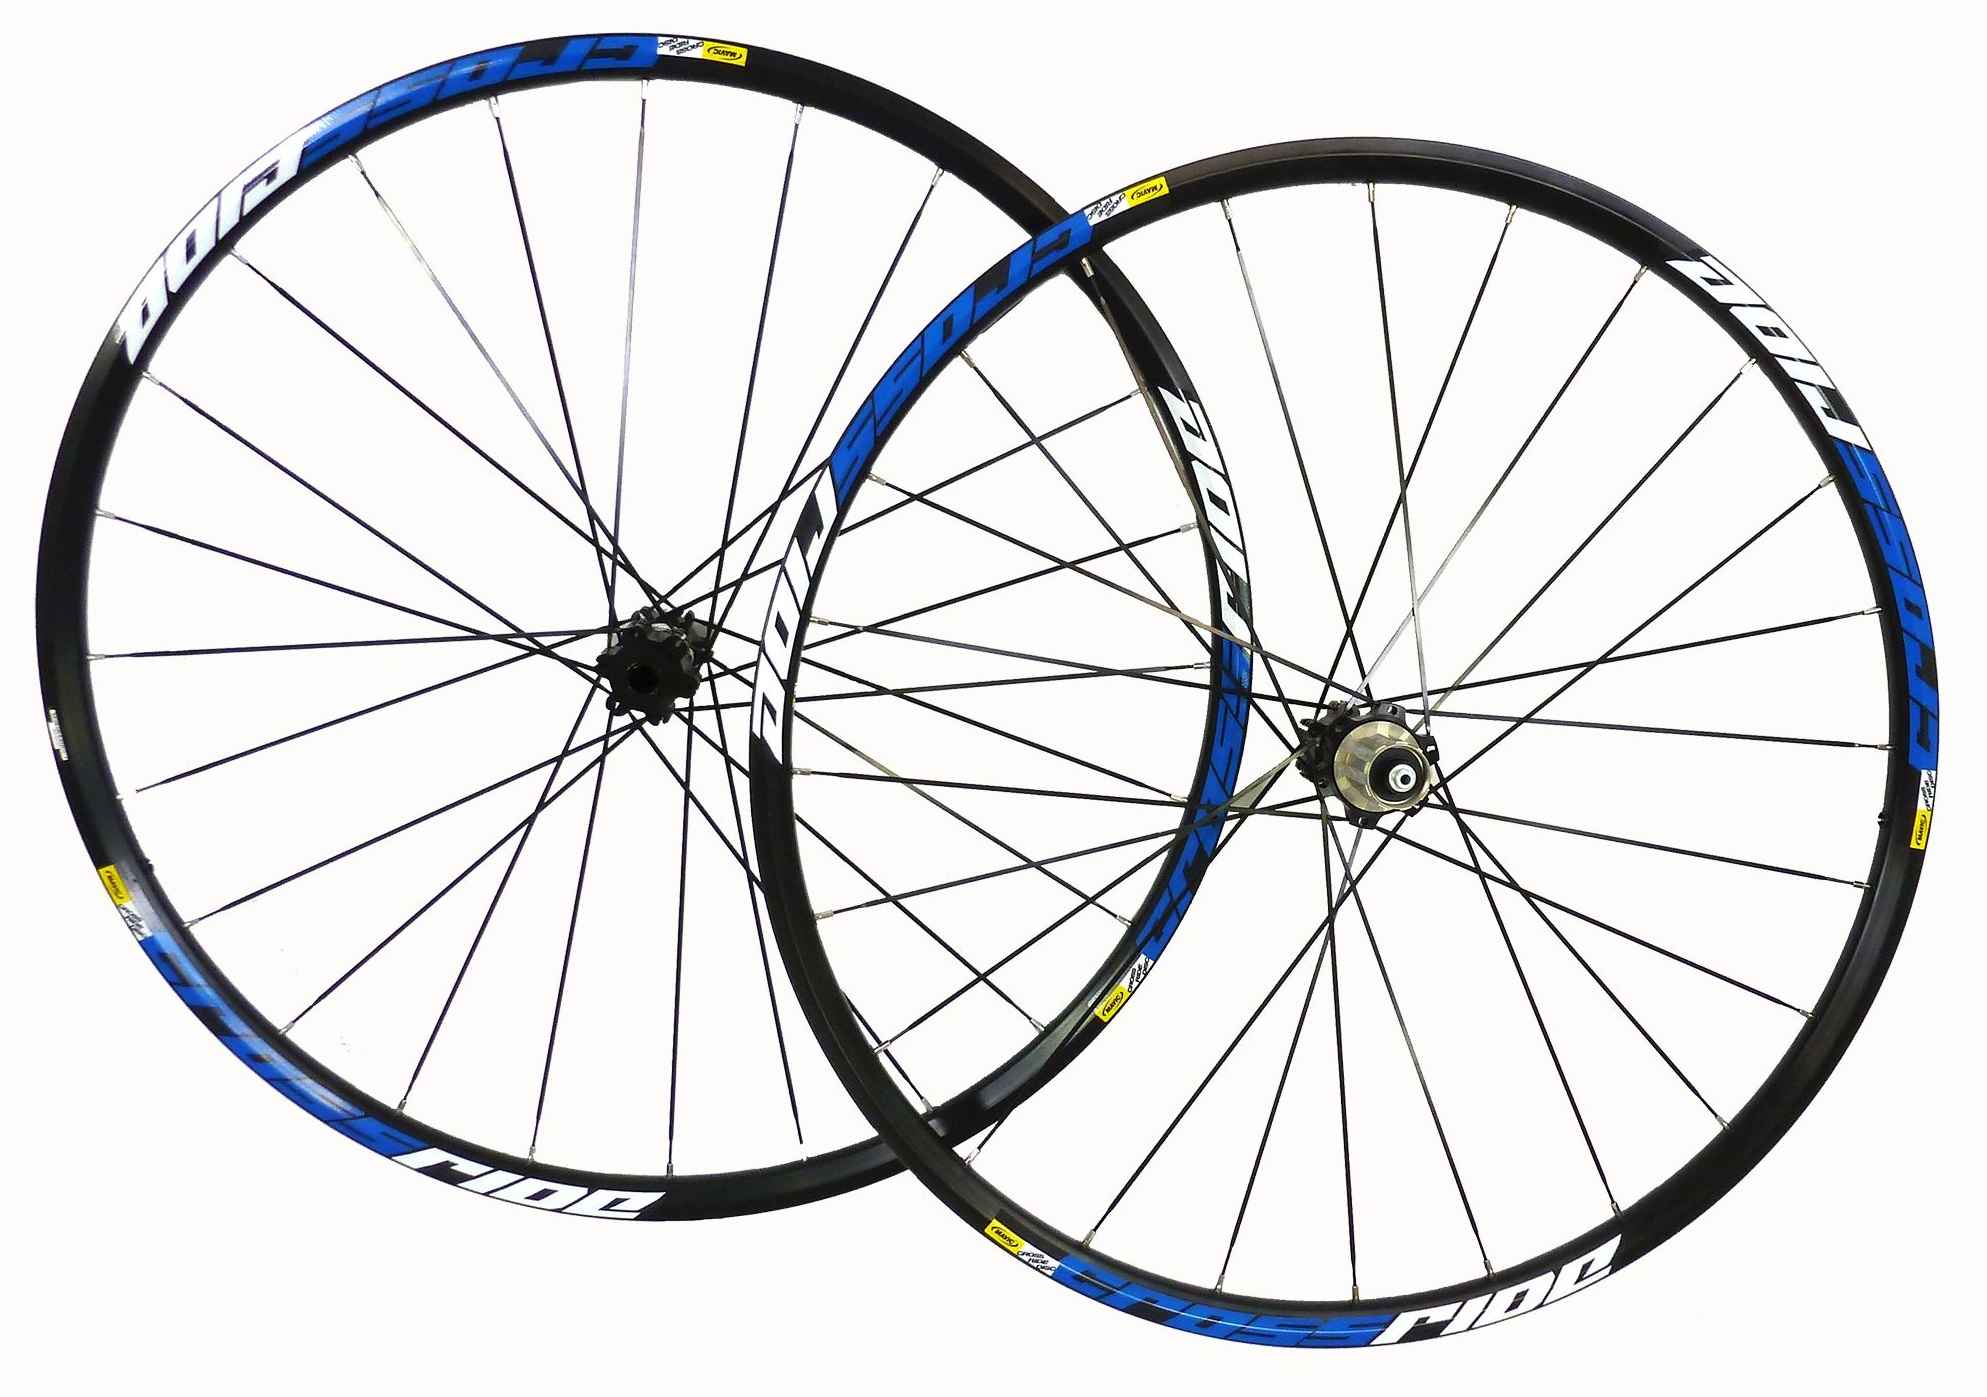 A factory wheelset